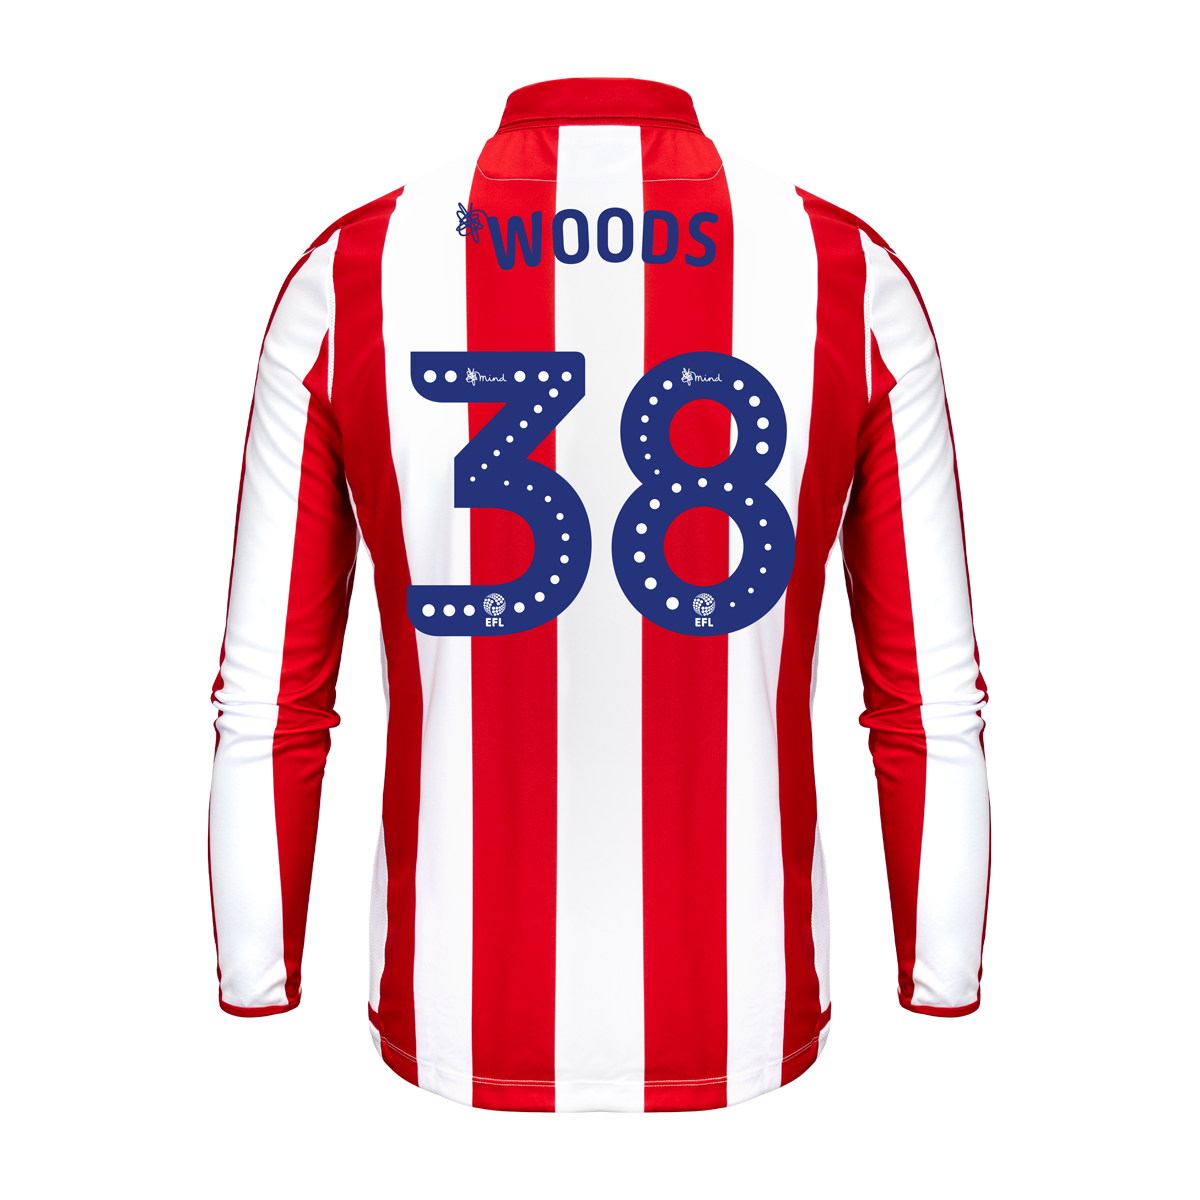 2019/20 Adult Home LS Shirt - Woods